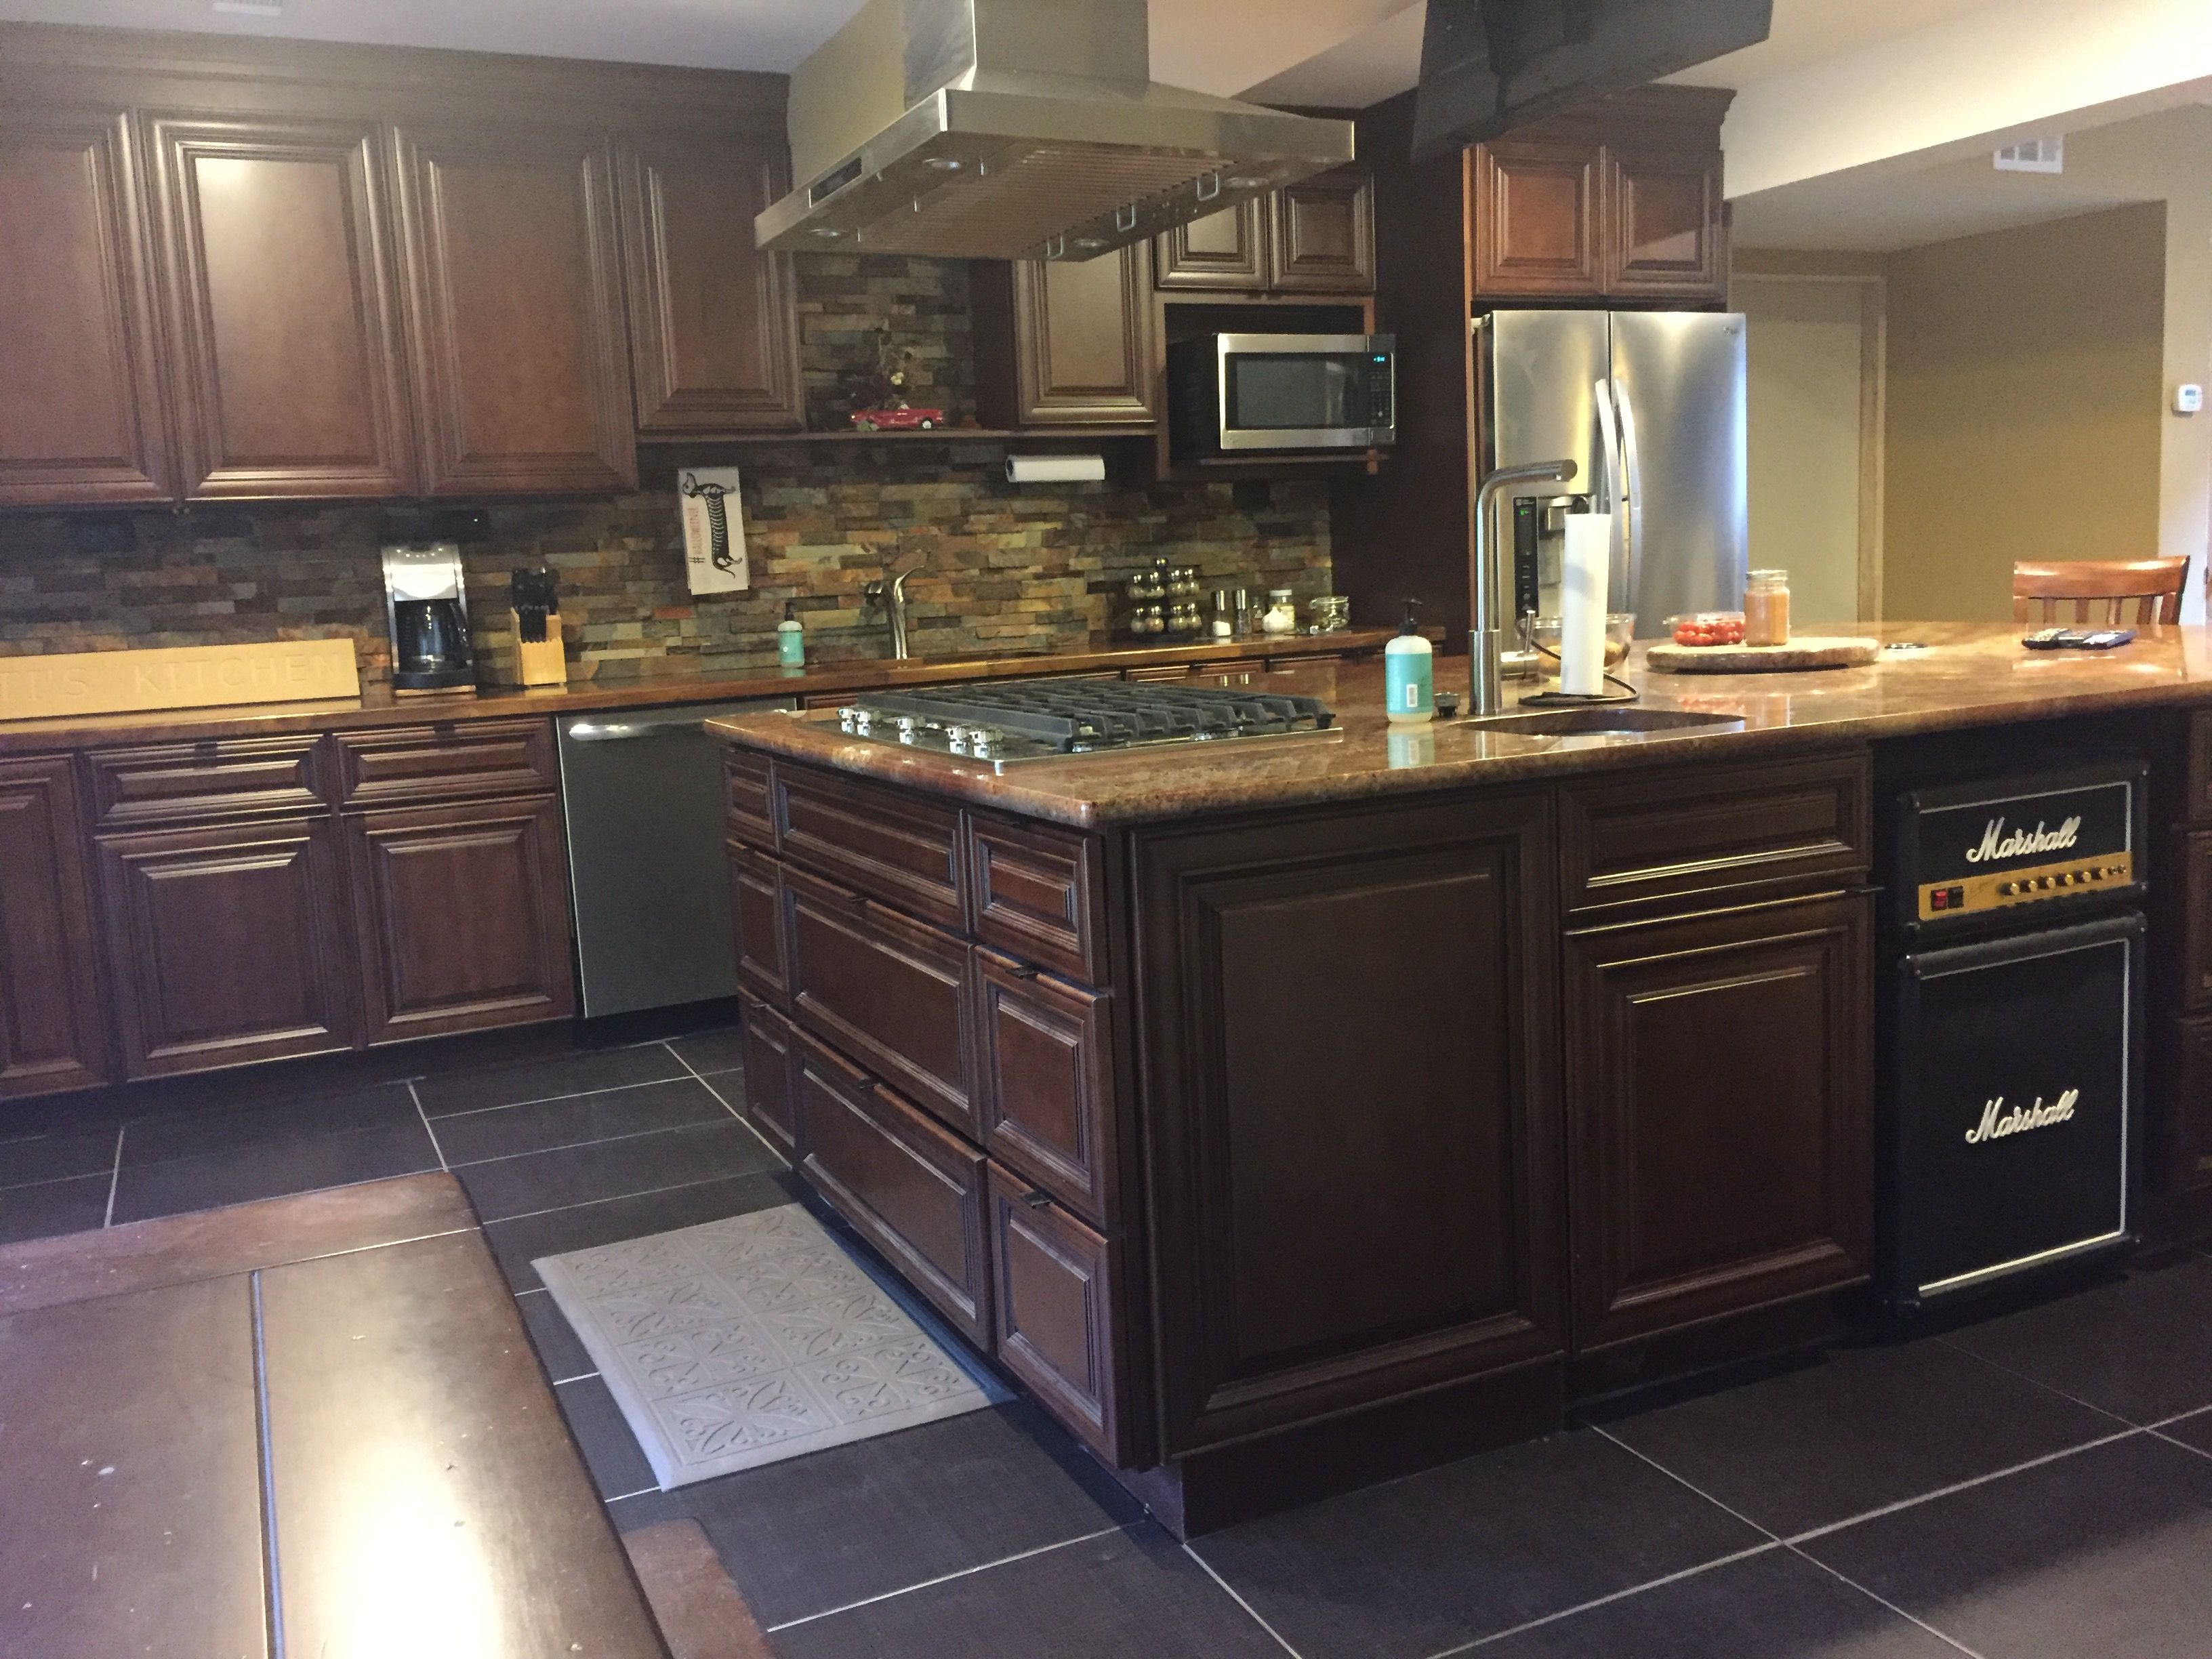 Hello Dear Friends Charleston Saddle Kitchen Cabinets Lily Ann Cabinets Customer Review We Would Like Rta Cabinets White Diy Kitchens Ikea Kitchen Design